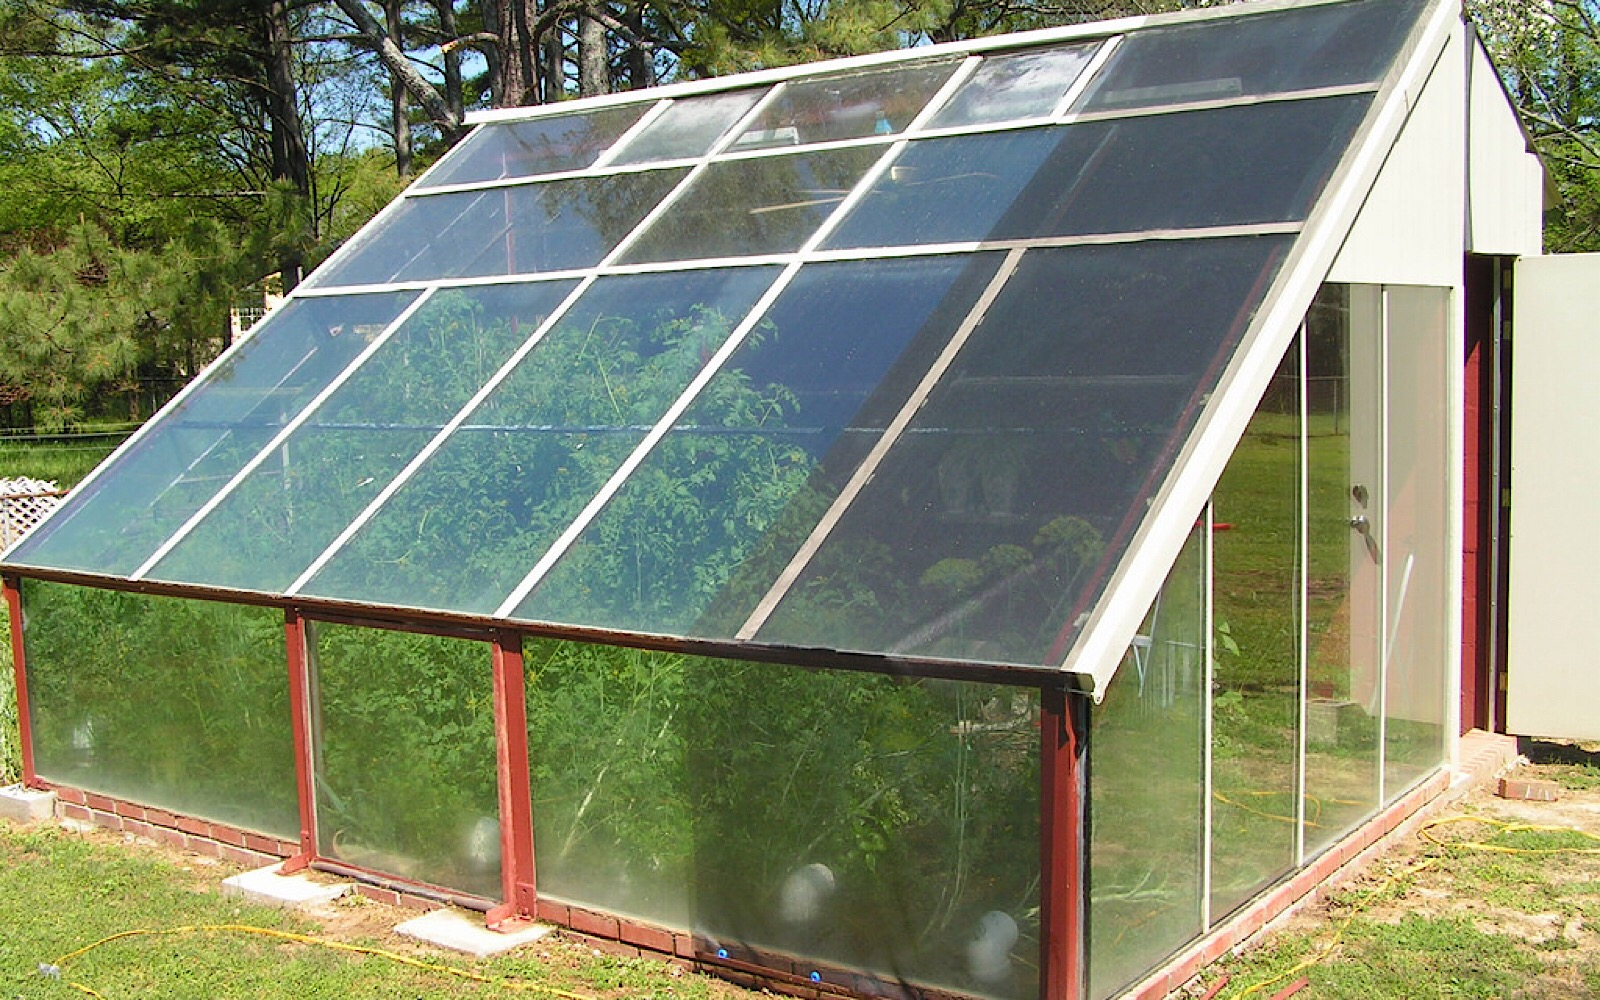 7 Tricks For Keeping The Greenhouse Warm Without Using Electricity One Green Planet